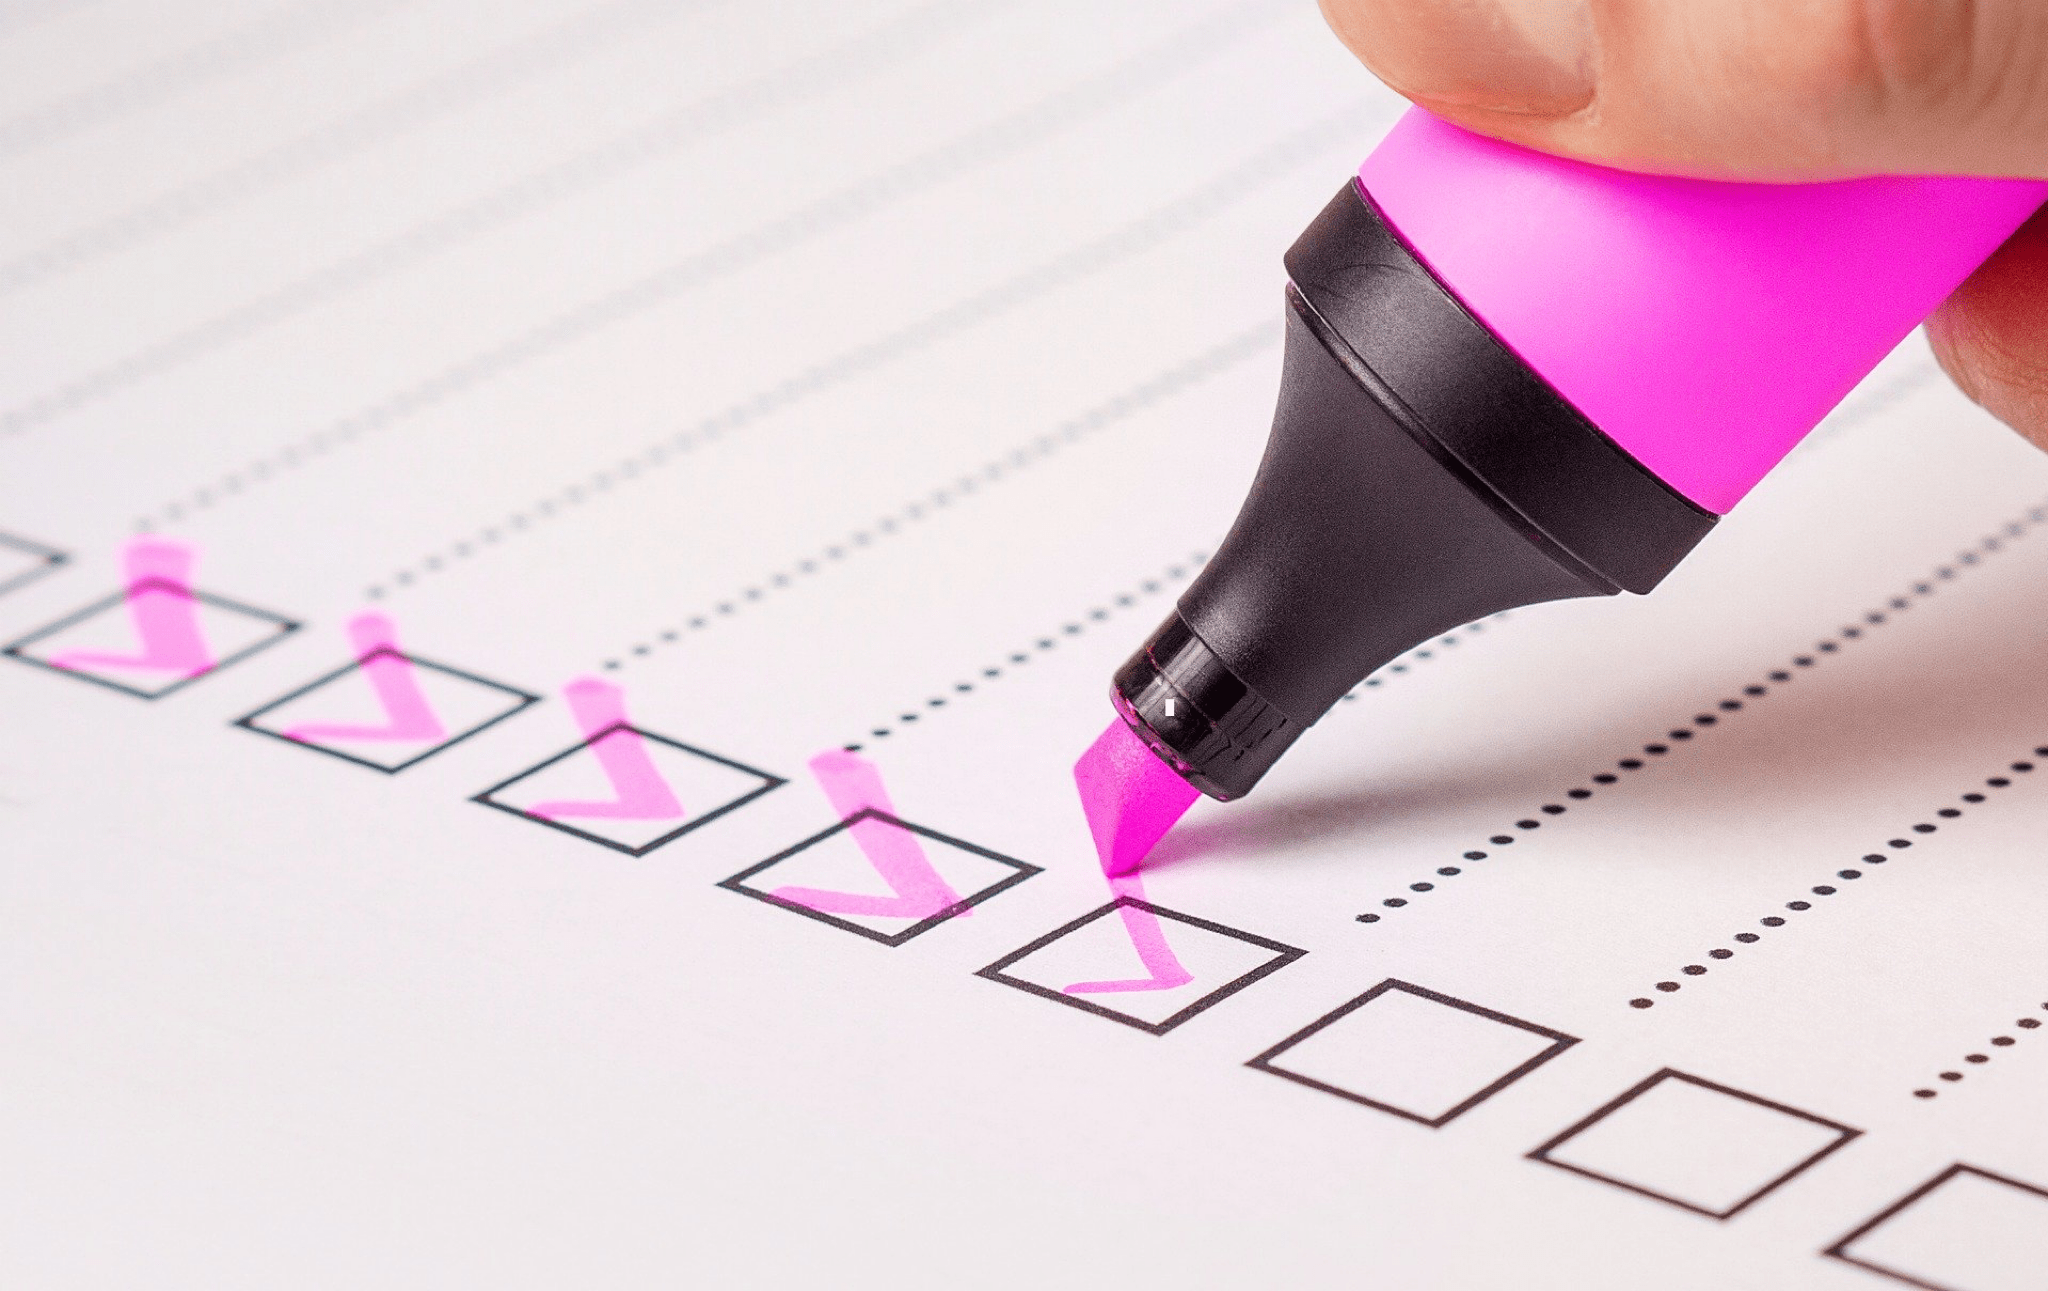 5-Point Checklist for Choosing the Right ABA Therapy Provider